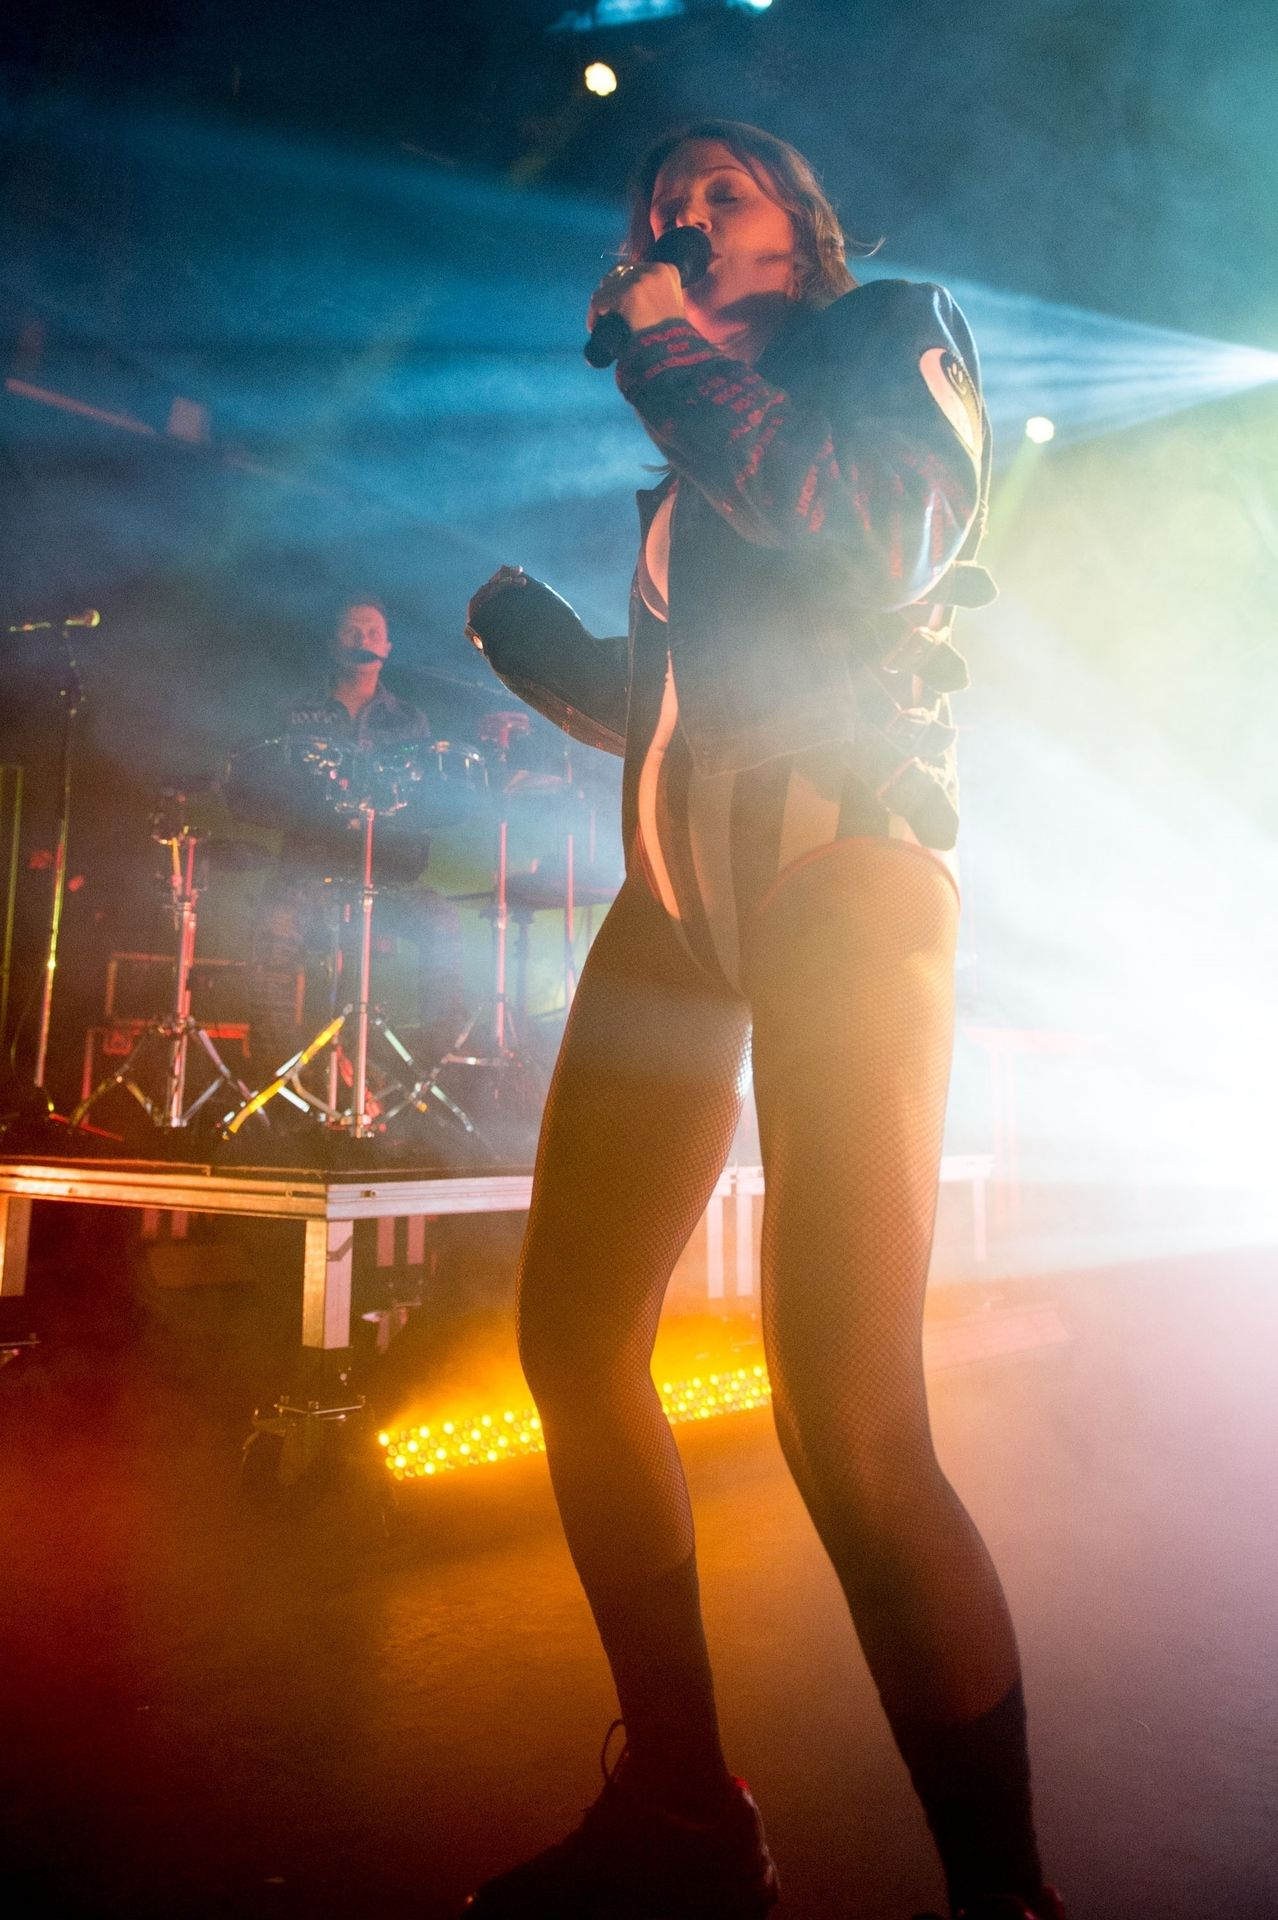 Tove Lo Is In Concert Performing Live At O2 Forum Kentish Town In London 0005